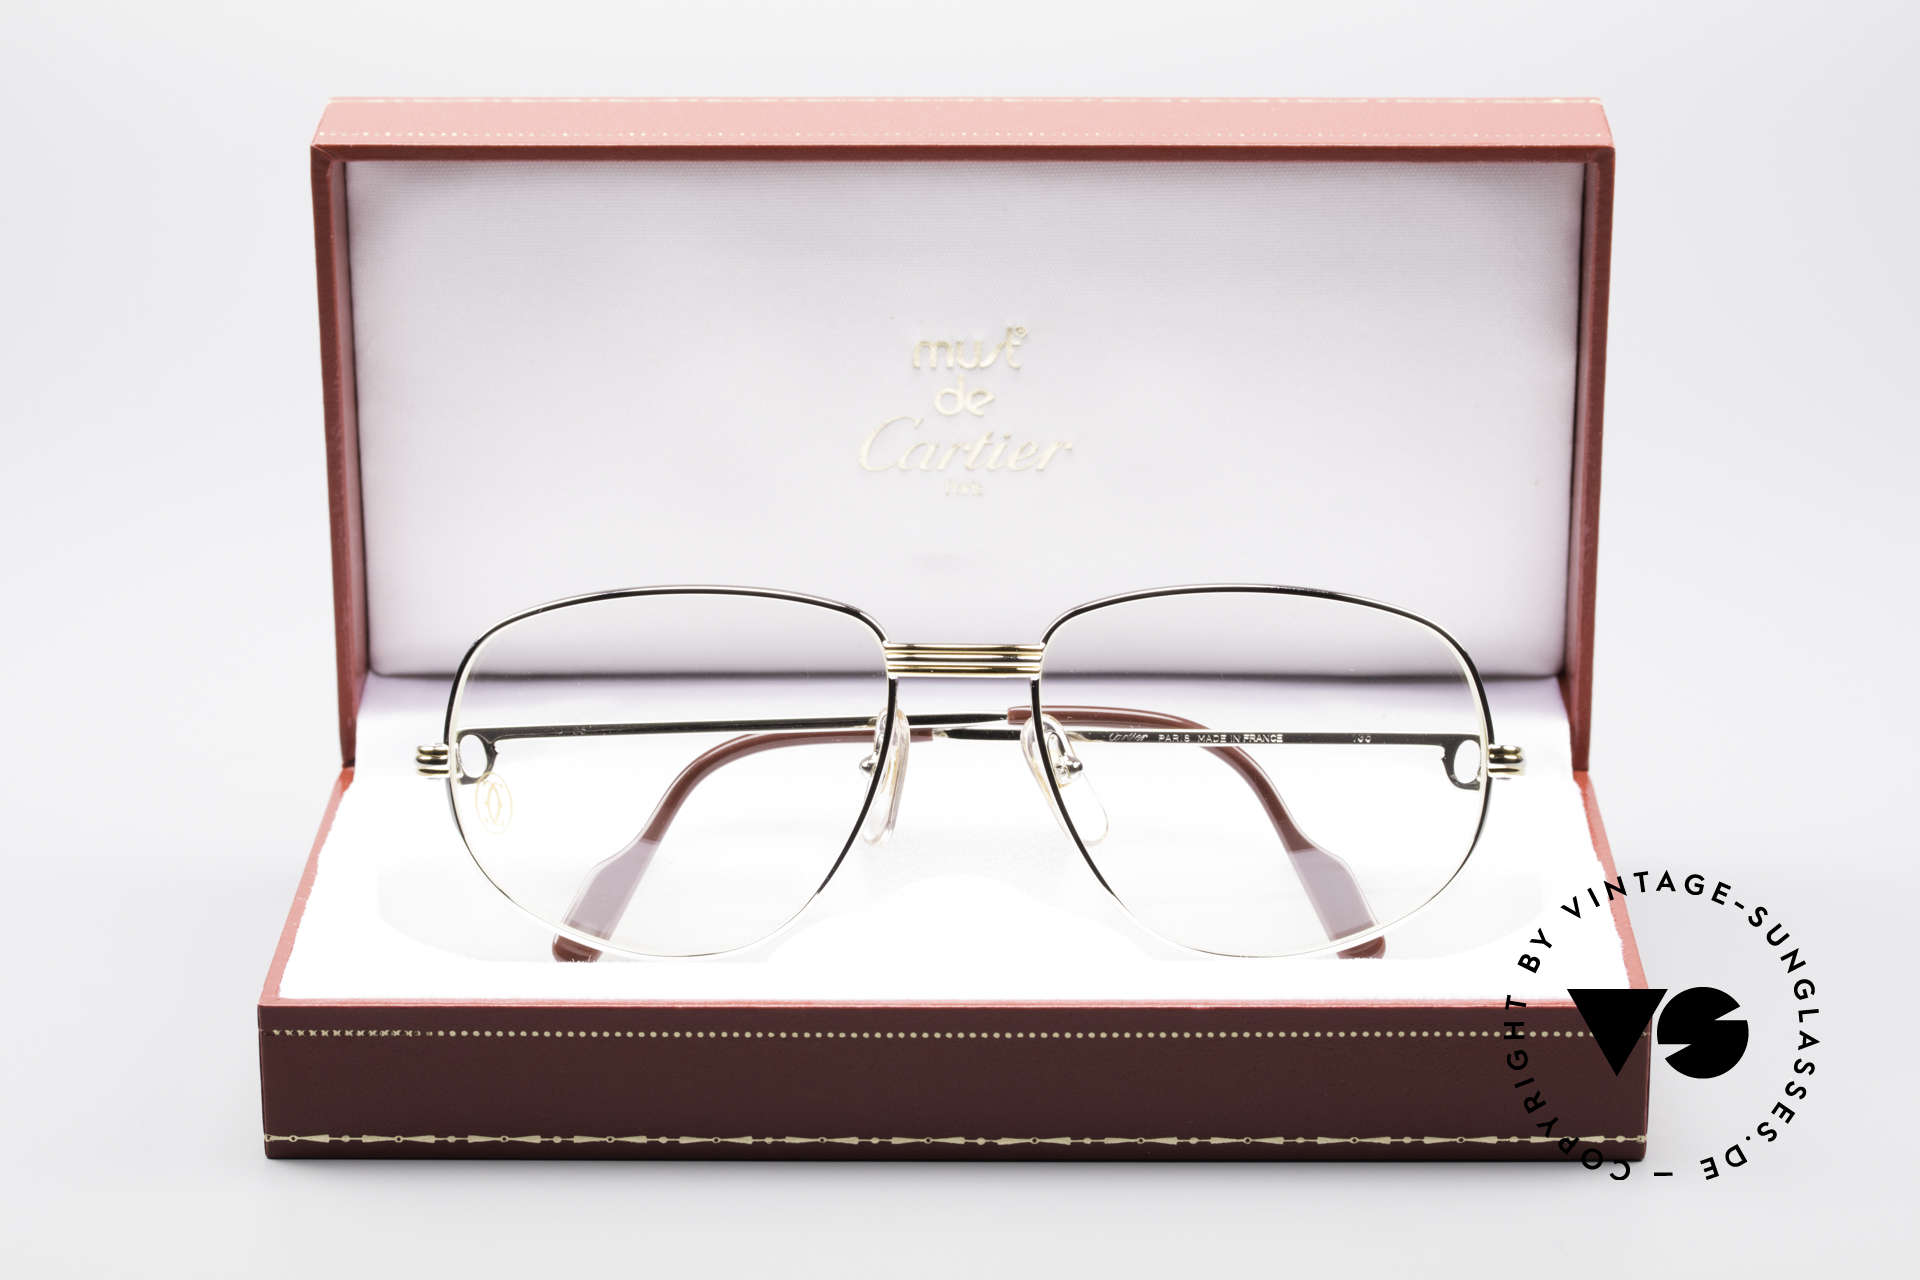 Cartier Romance LC - L Platinum Finish Frame, unworn with original box (hard to find in this condition), Made for Men